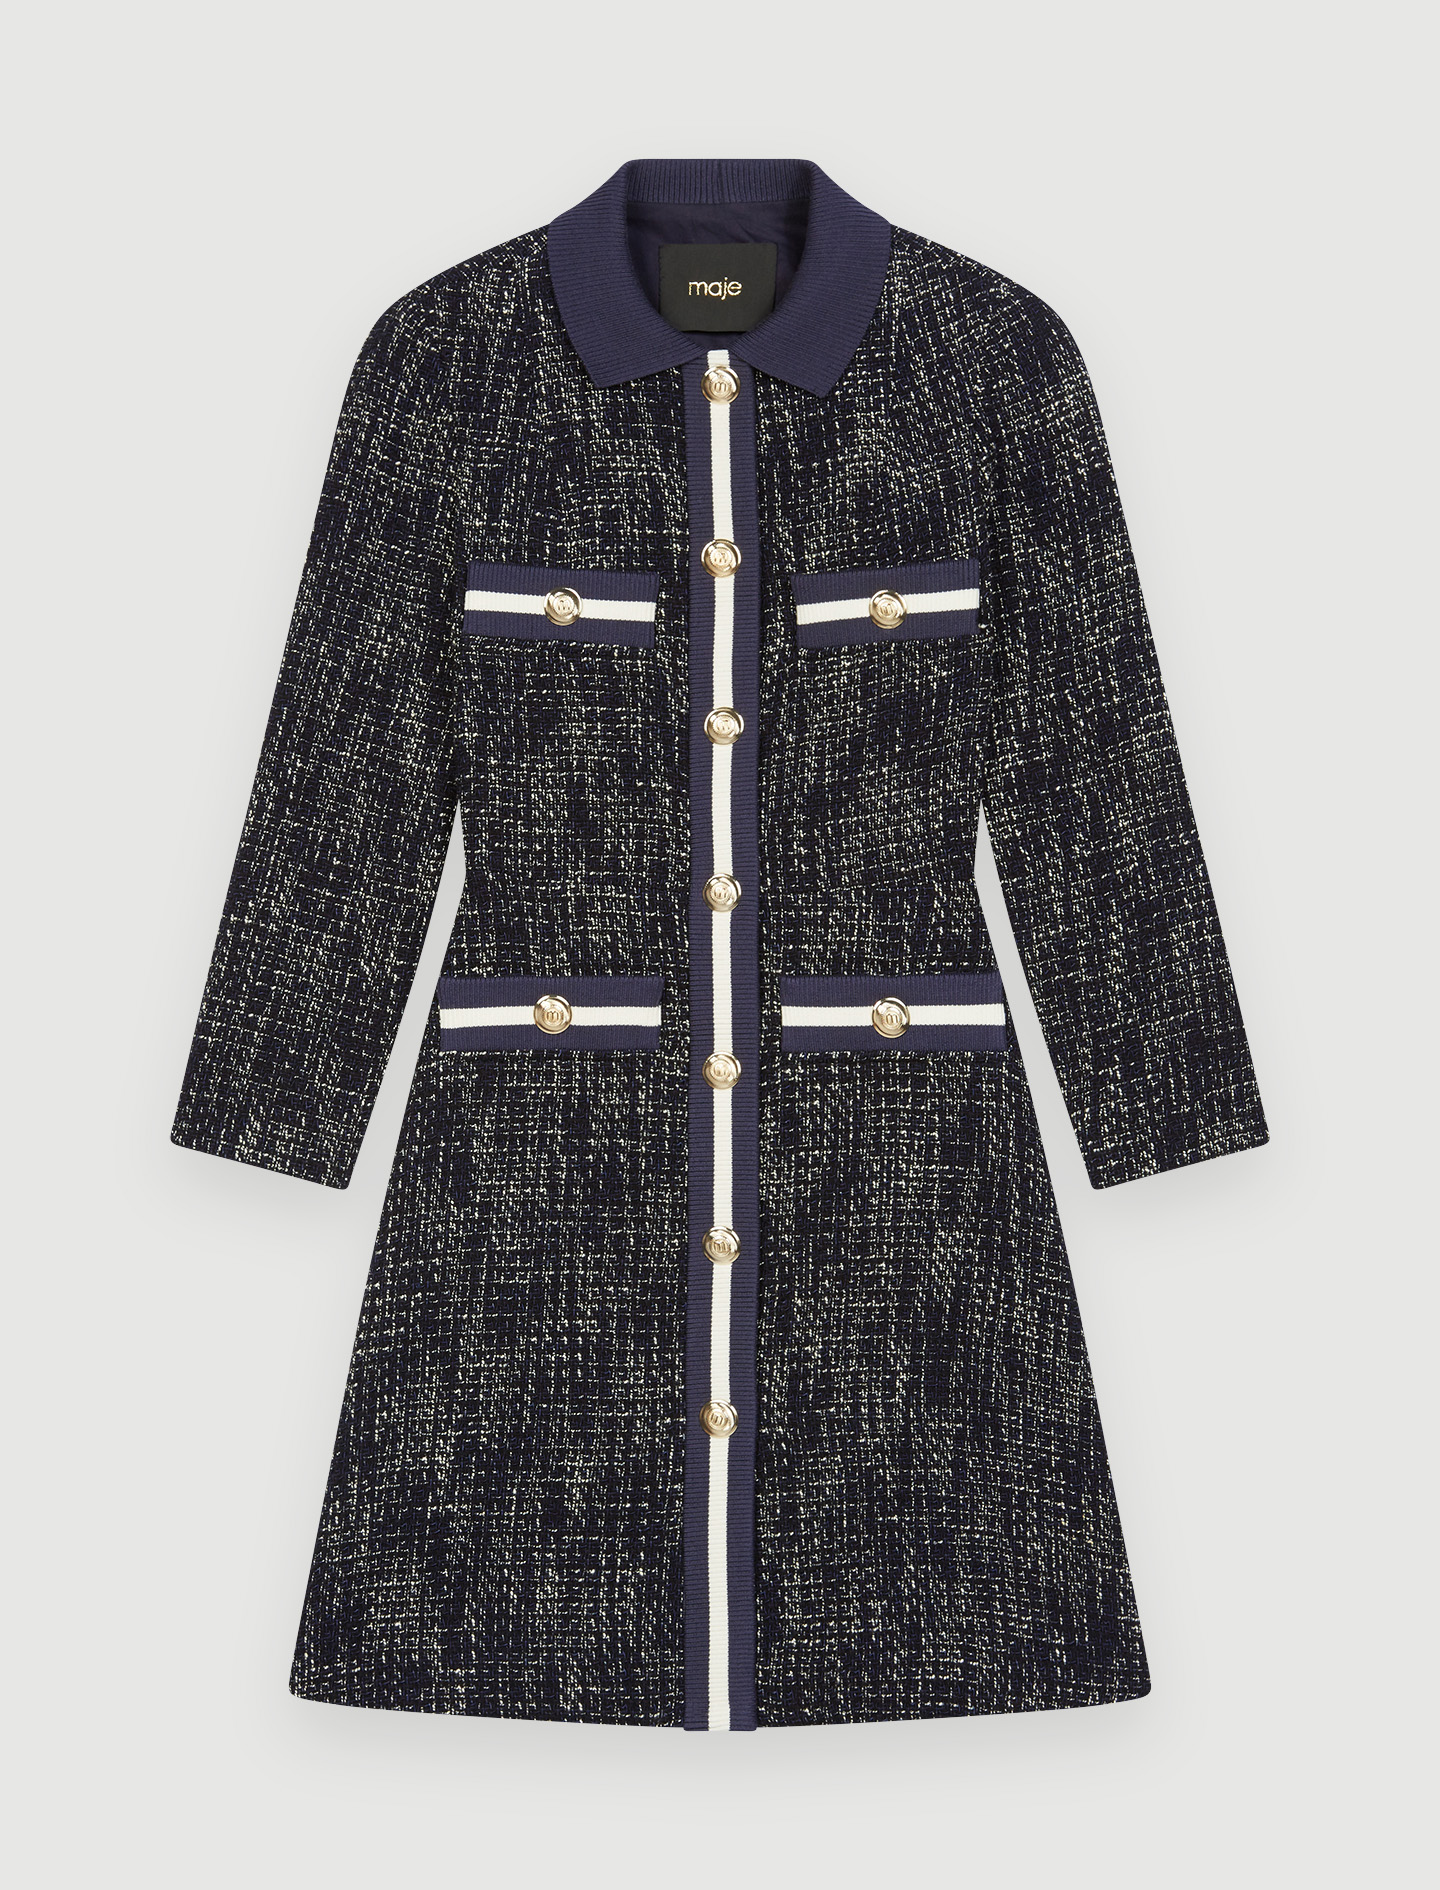 Tweed style dress with contrasting bands - Marine